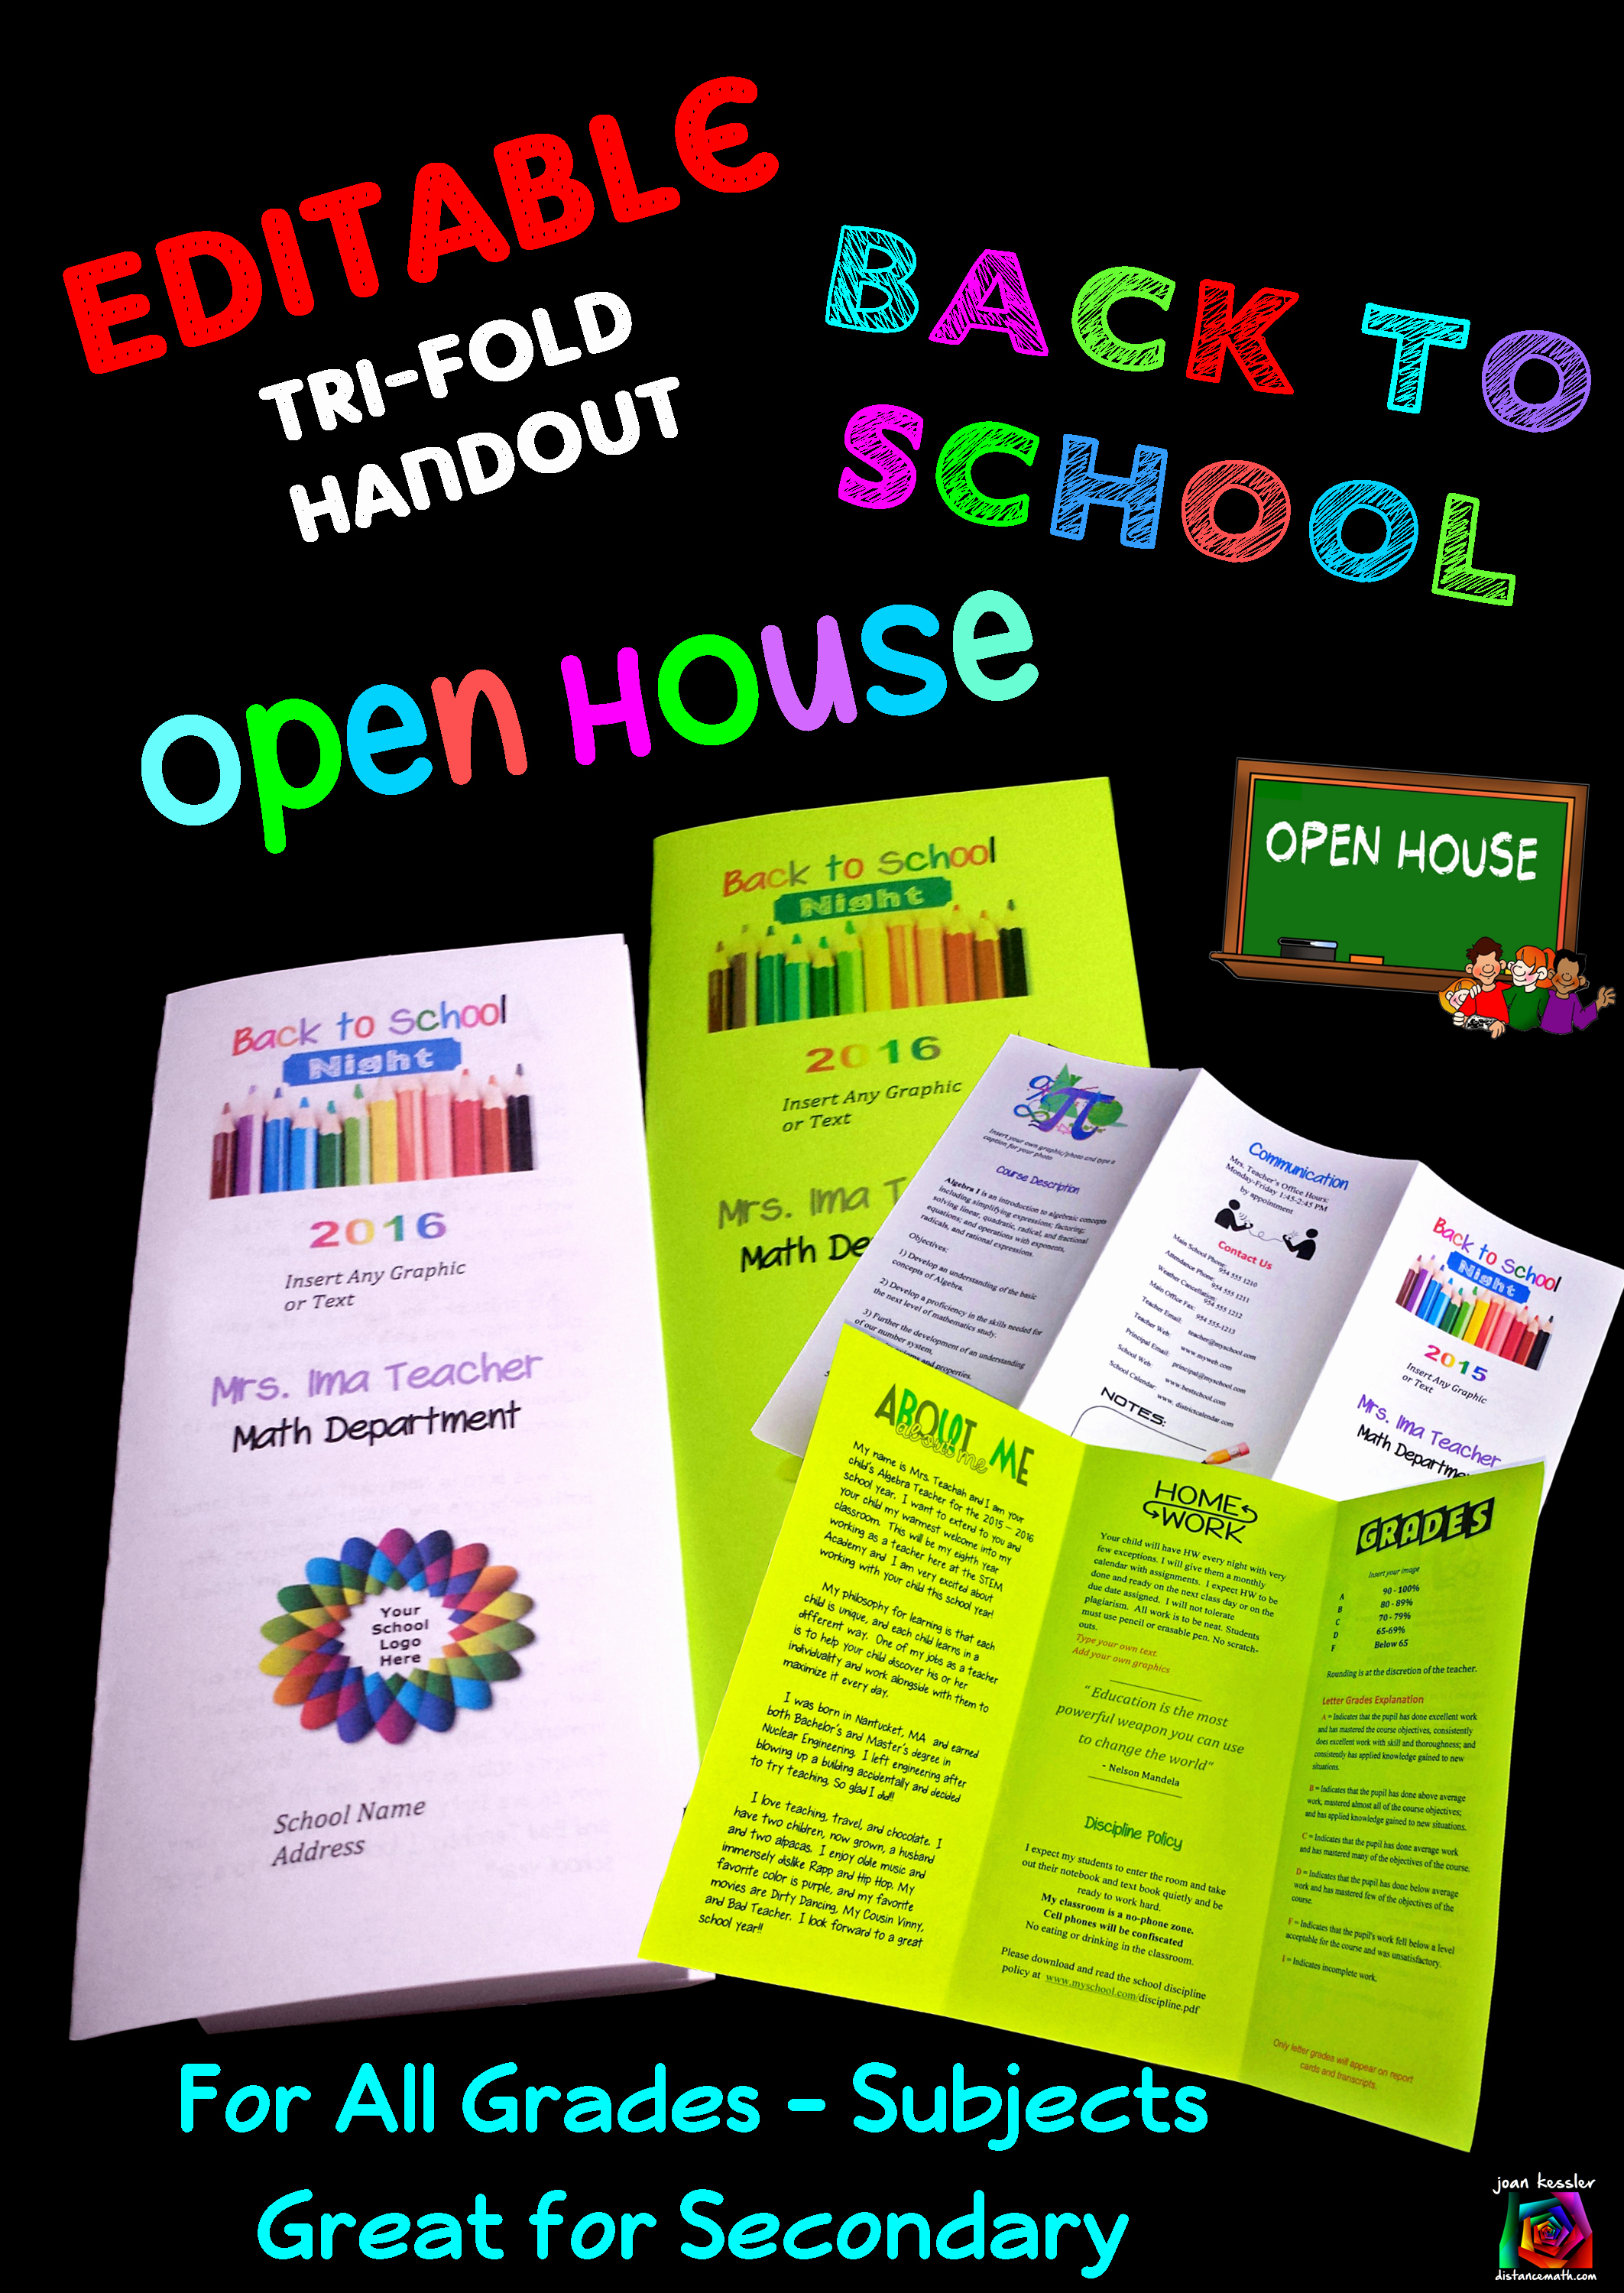 Parents Night Out Flyer Template Lovely Editable Open House Parent Night Back to School Tri Fold